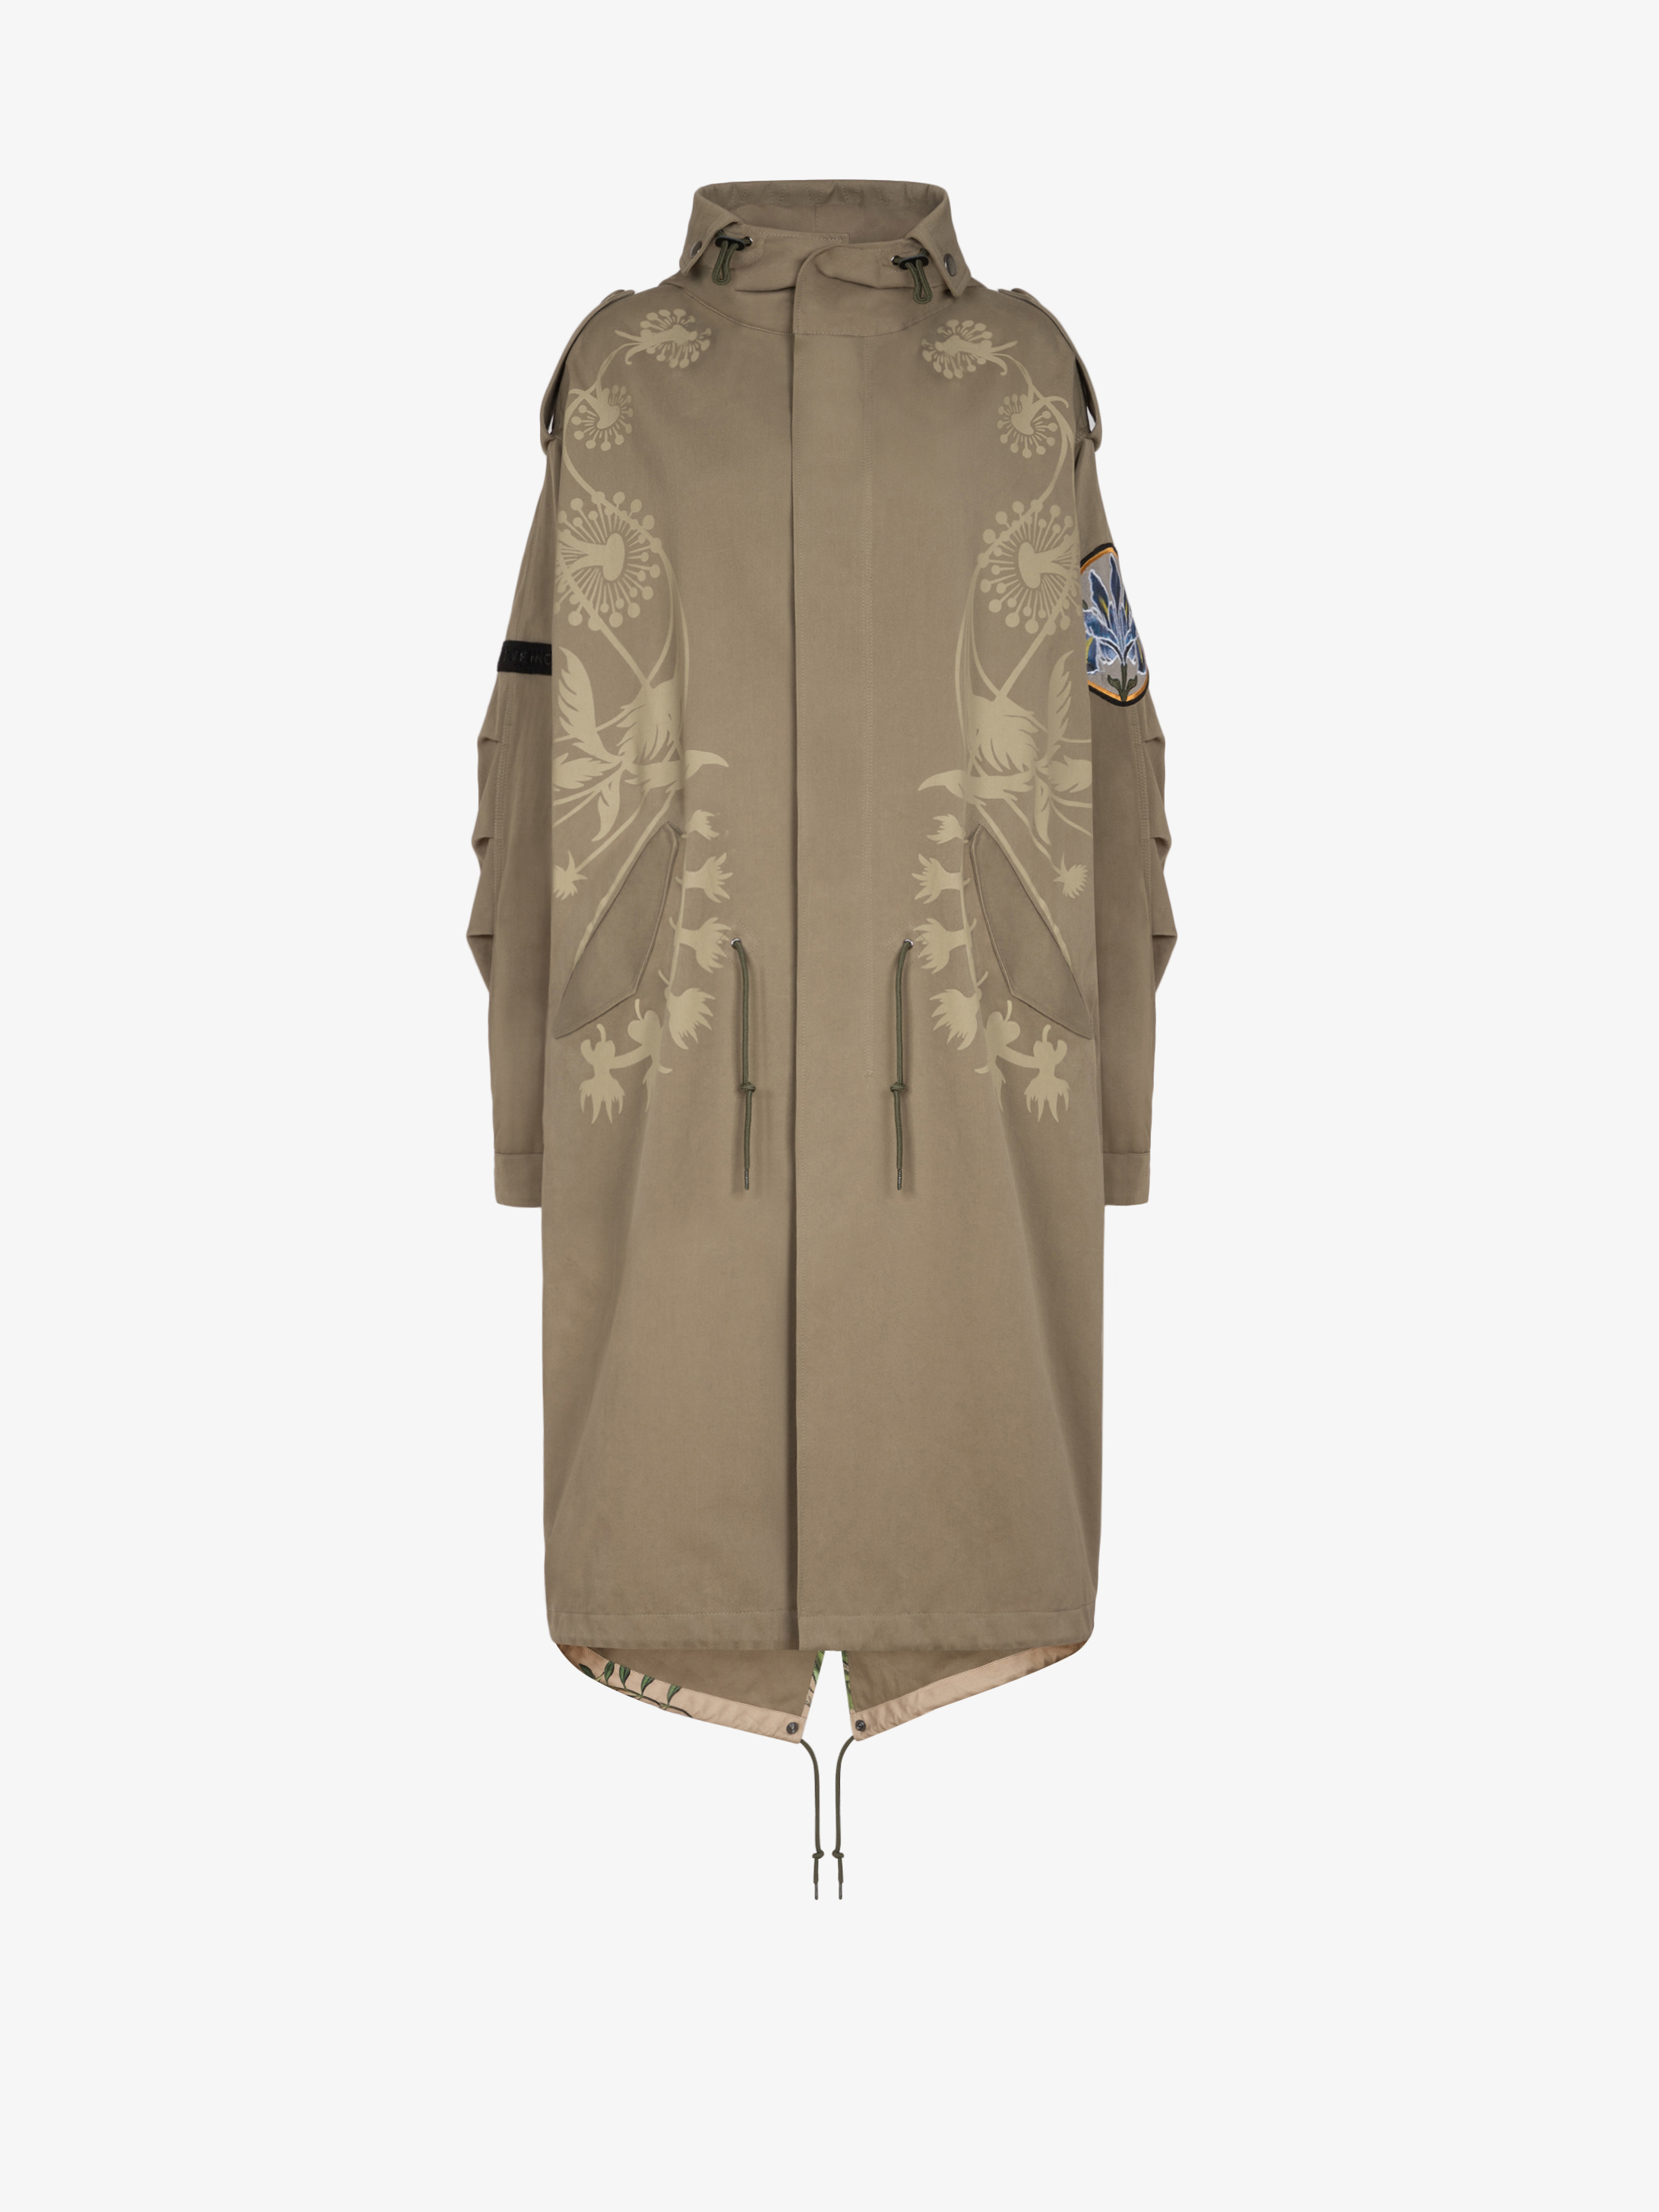 Oversized printed parka with floral patchs